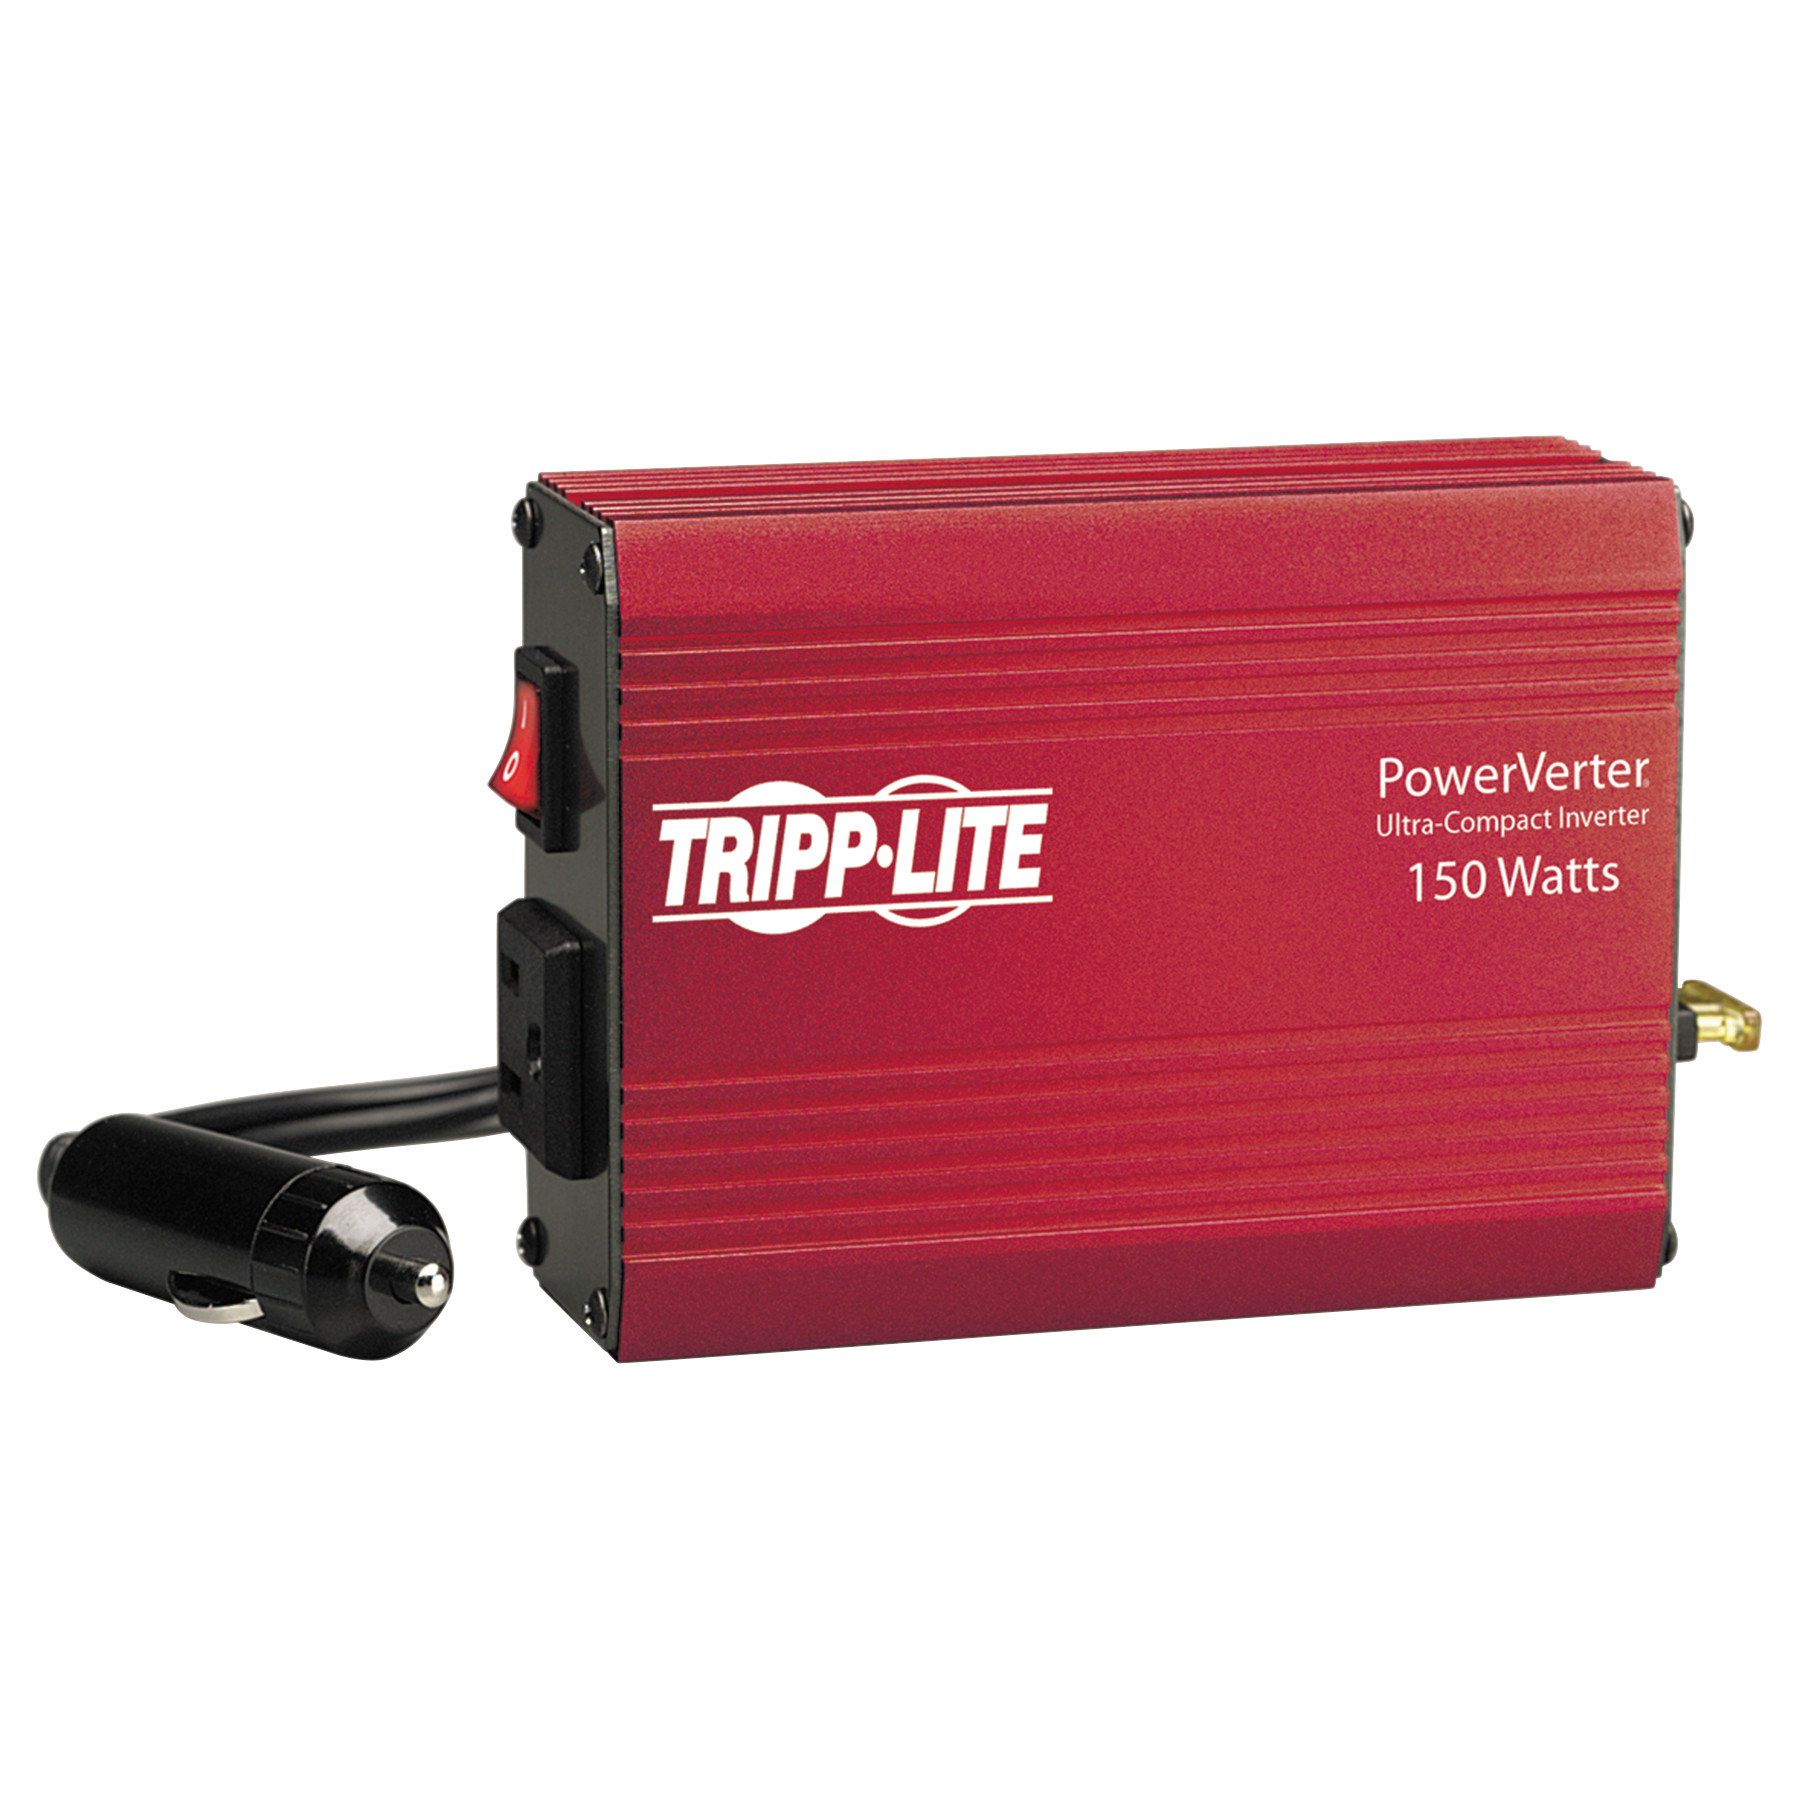 Tripp Lite Powerverter 150w Inverter 12v Dc Input 120v Ac Output 1 New To Electronics 12vdc Supply From 120vac How Does It Work Outlet